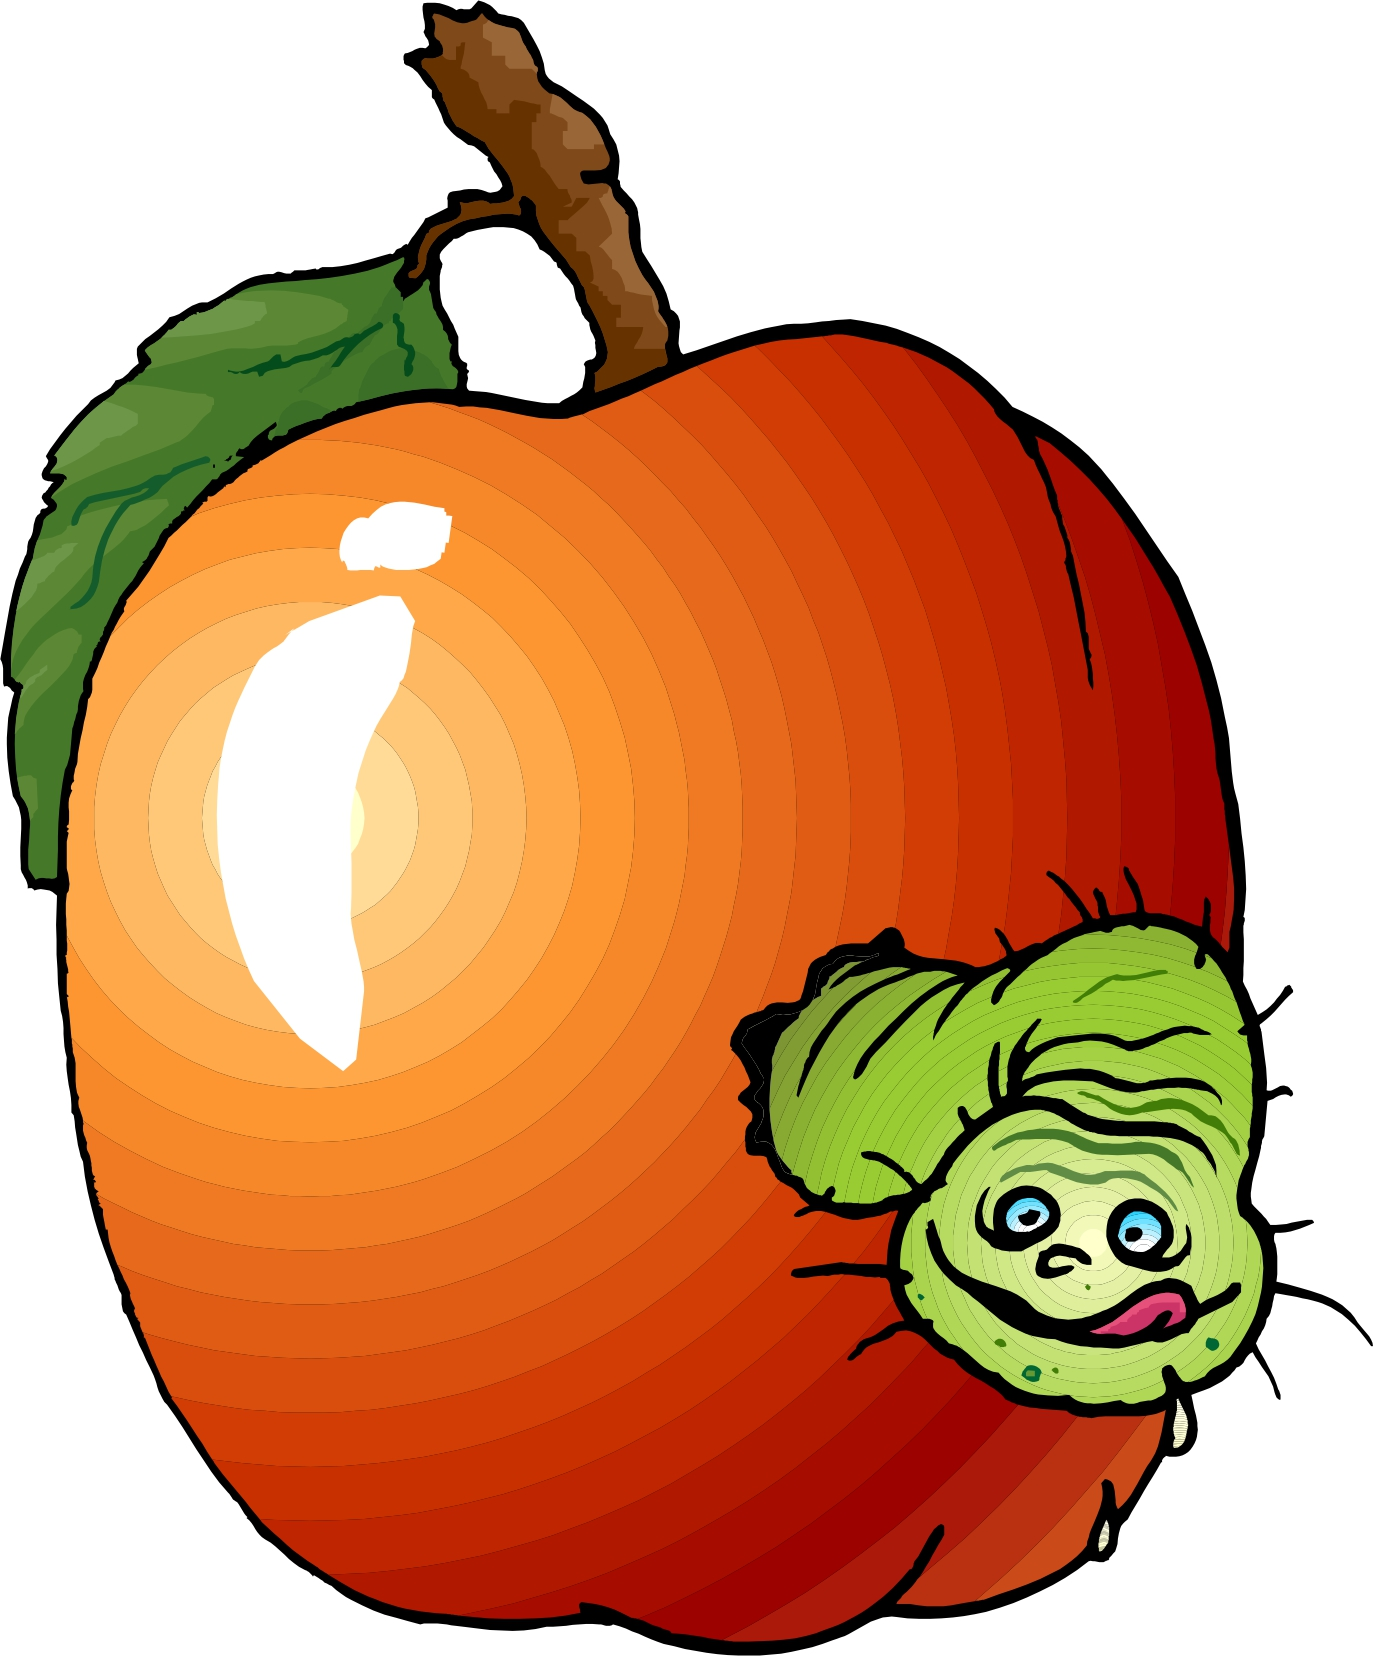 clipart apple worm - photo #24